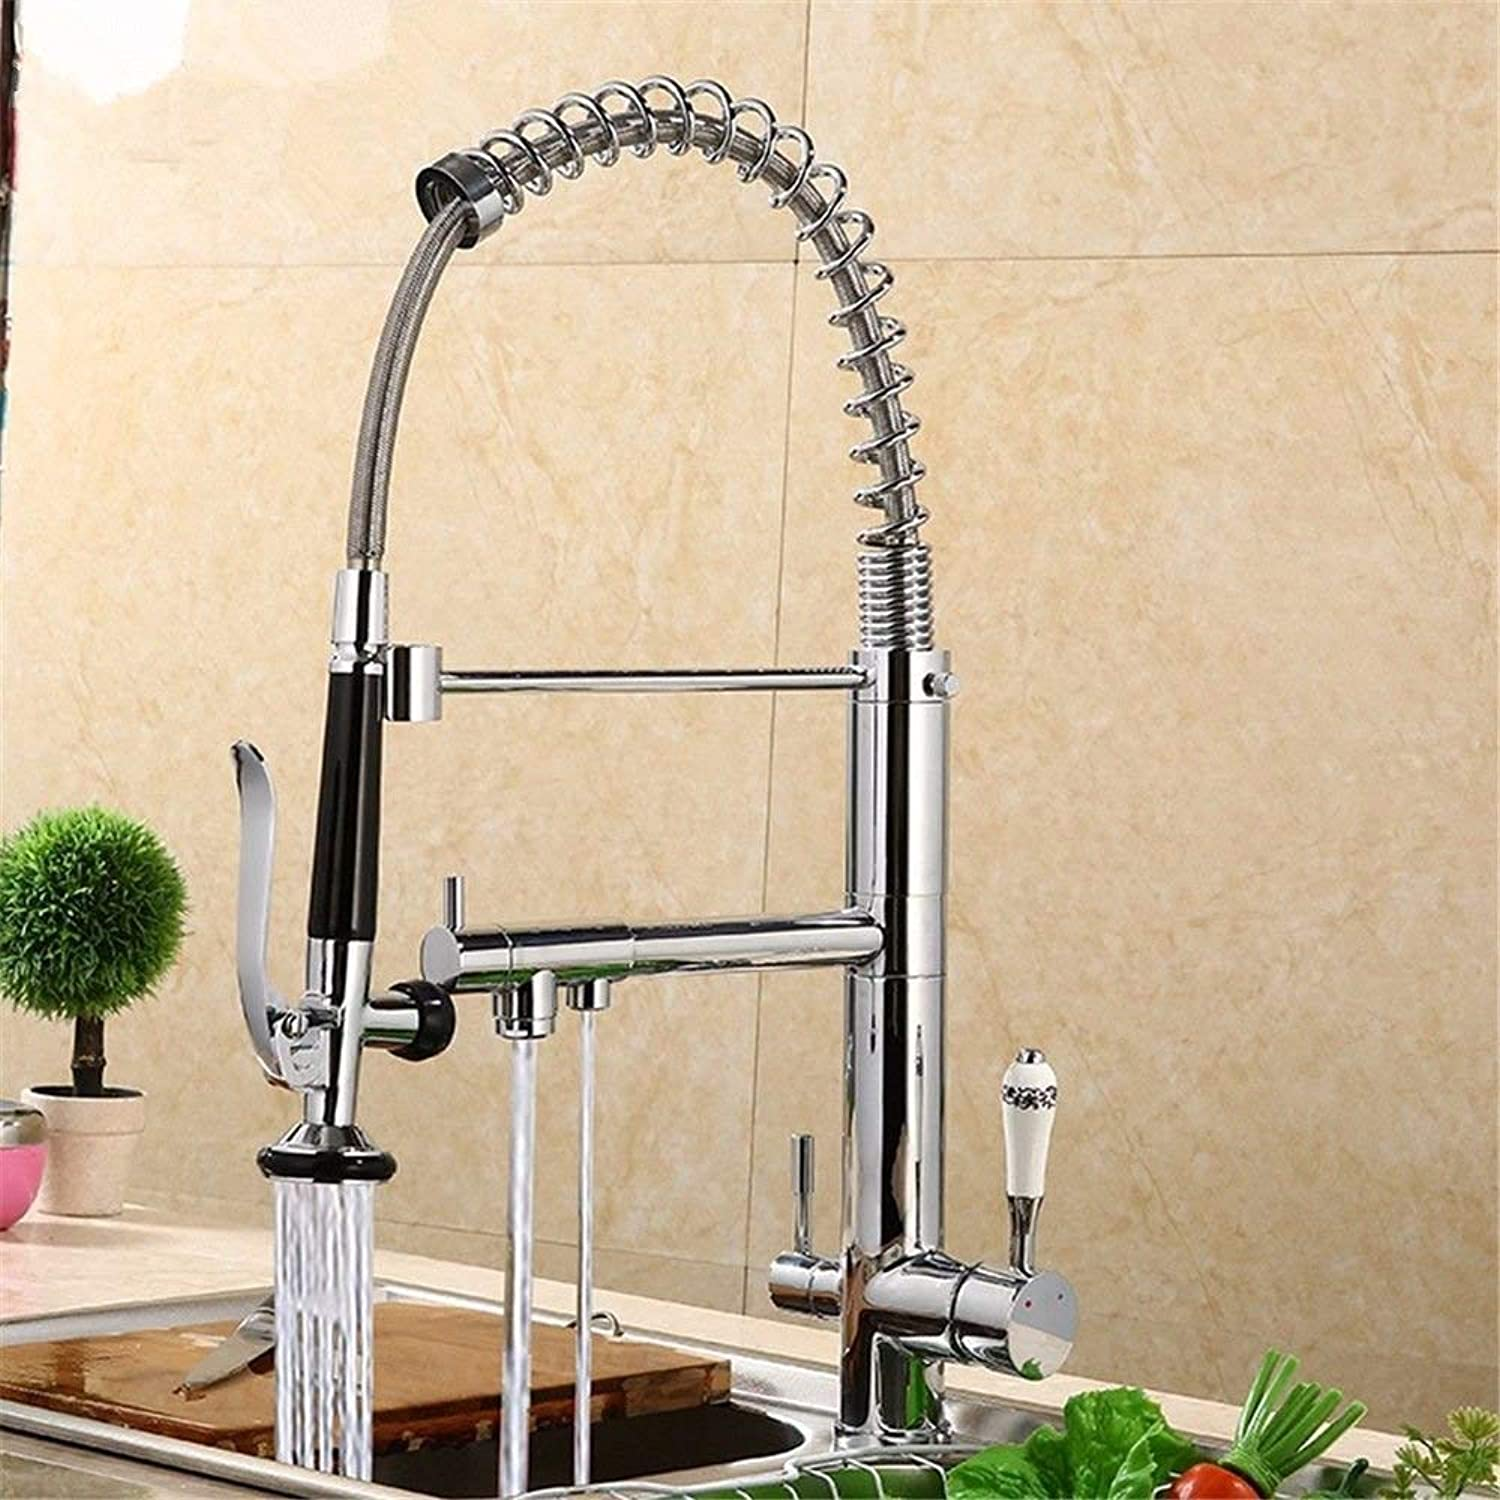 Oudan Bathroom Sink Basin Tap Brass Mixer Tap Washroom Mixer Faucet The copper hot and cold chrome-colord antique double-tap the water basin bathroom kitchen H